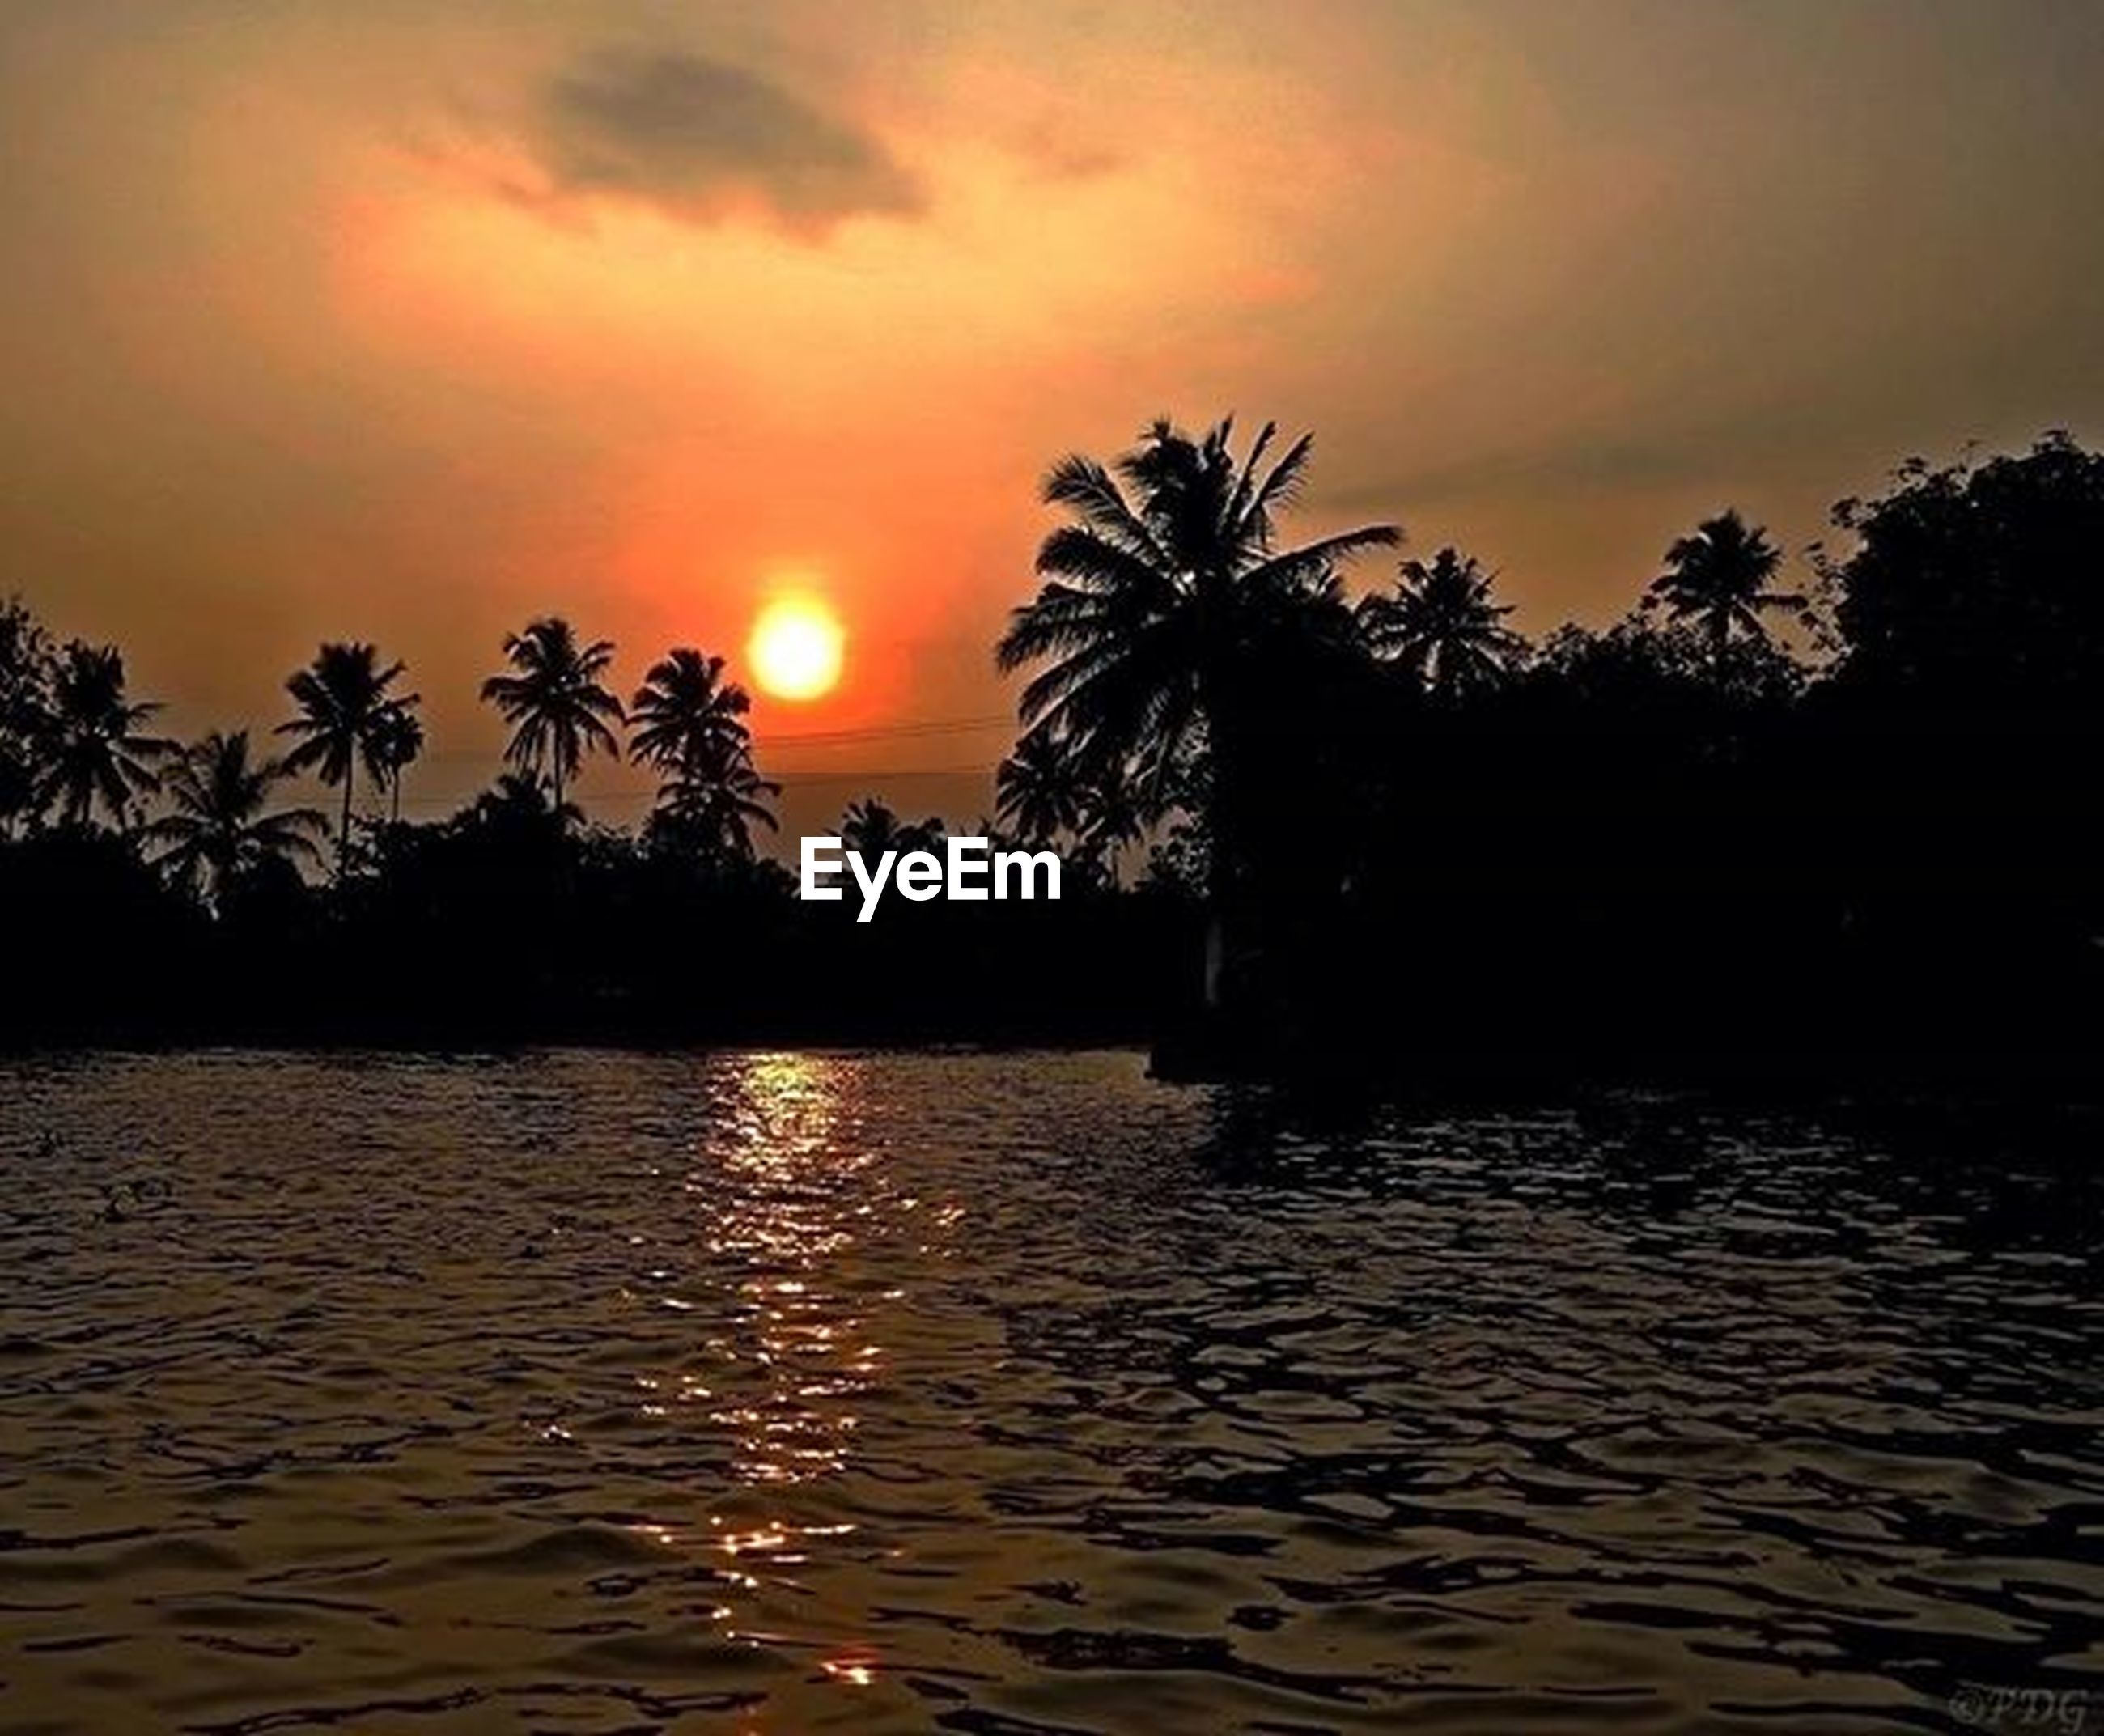 sunset, water, silhouette, tranquil scene, tree, tranquility, sky, scenics, beauty in nature, palm tree, waterfront, orange color, sun, nature, reflection, idyllic, rippled, sea, cloud - sky, lake